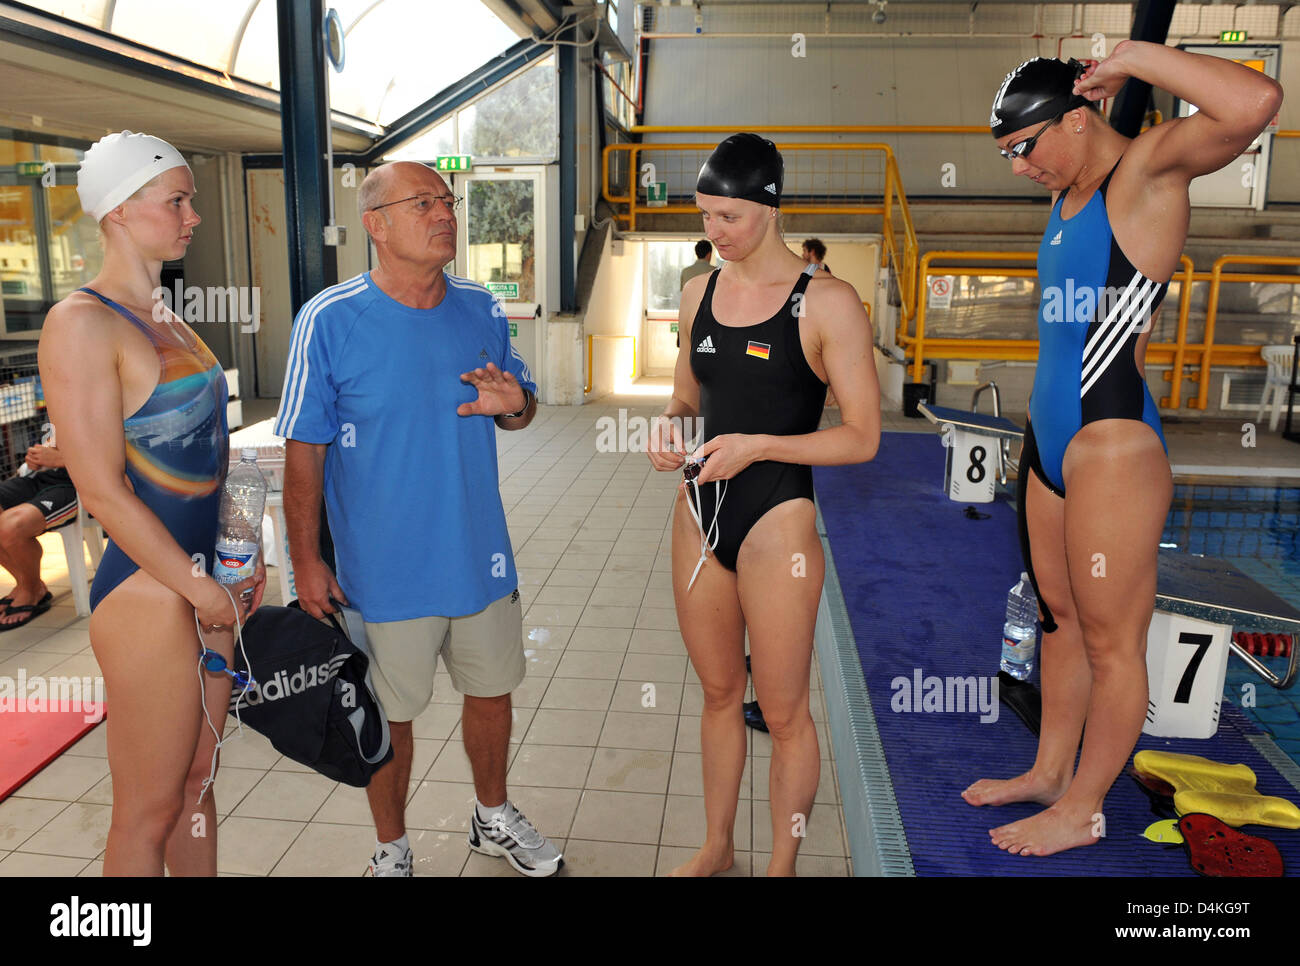 German Swimmers Britta Steffen L R Petra Dallmann And Daniela Samulski Talk To Coach Norbert Warnatzsch In The Training Camp Of The German Swimming